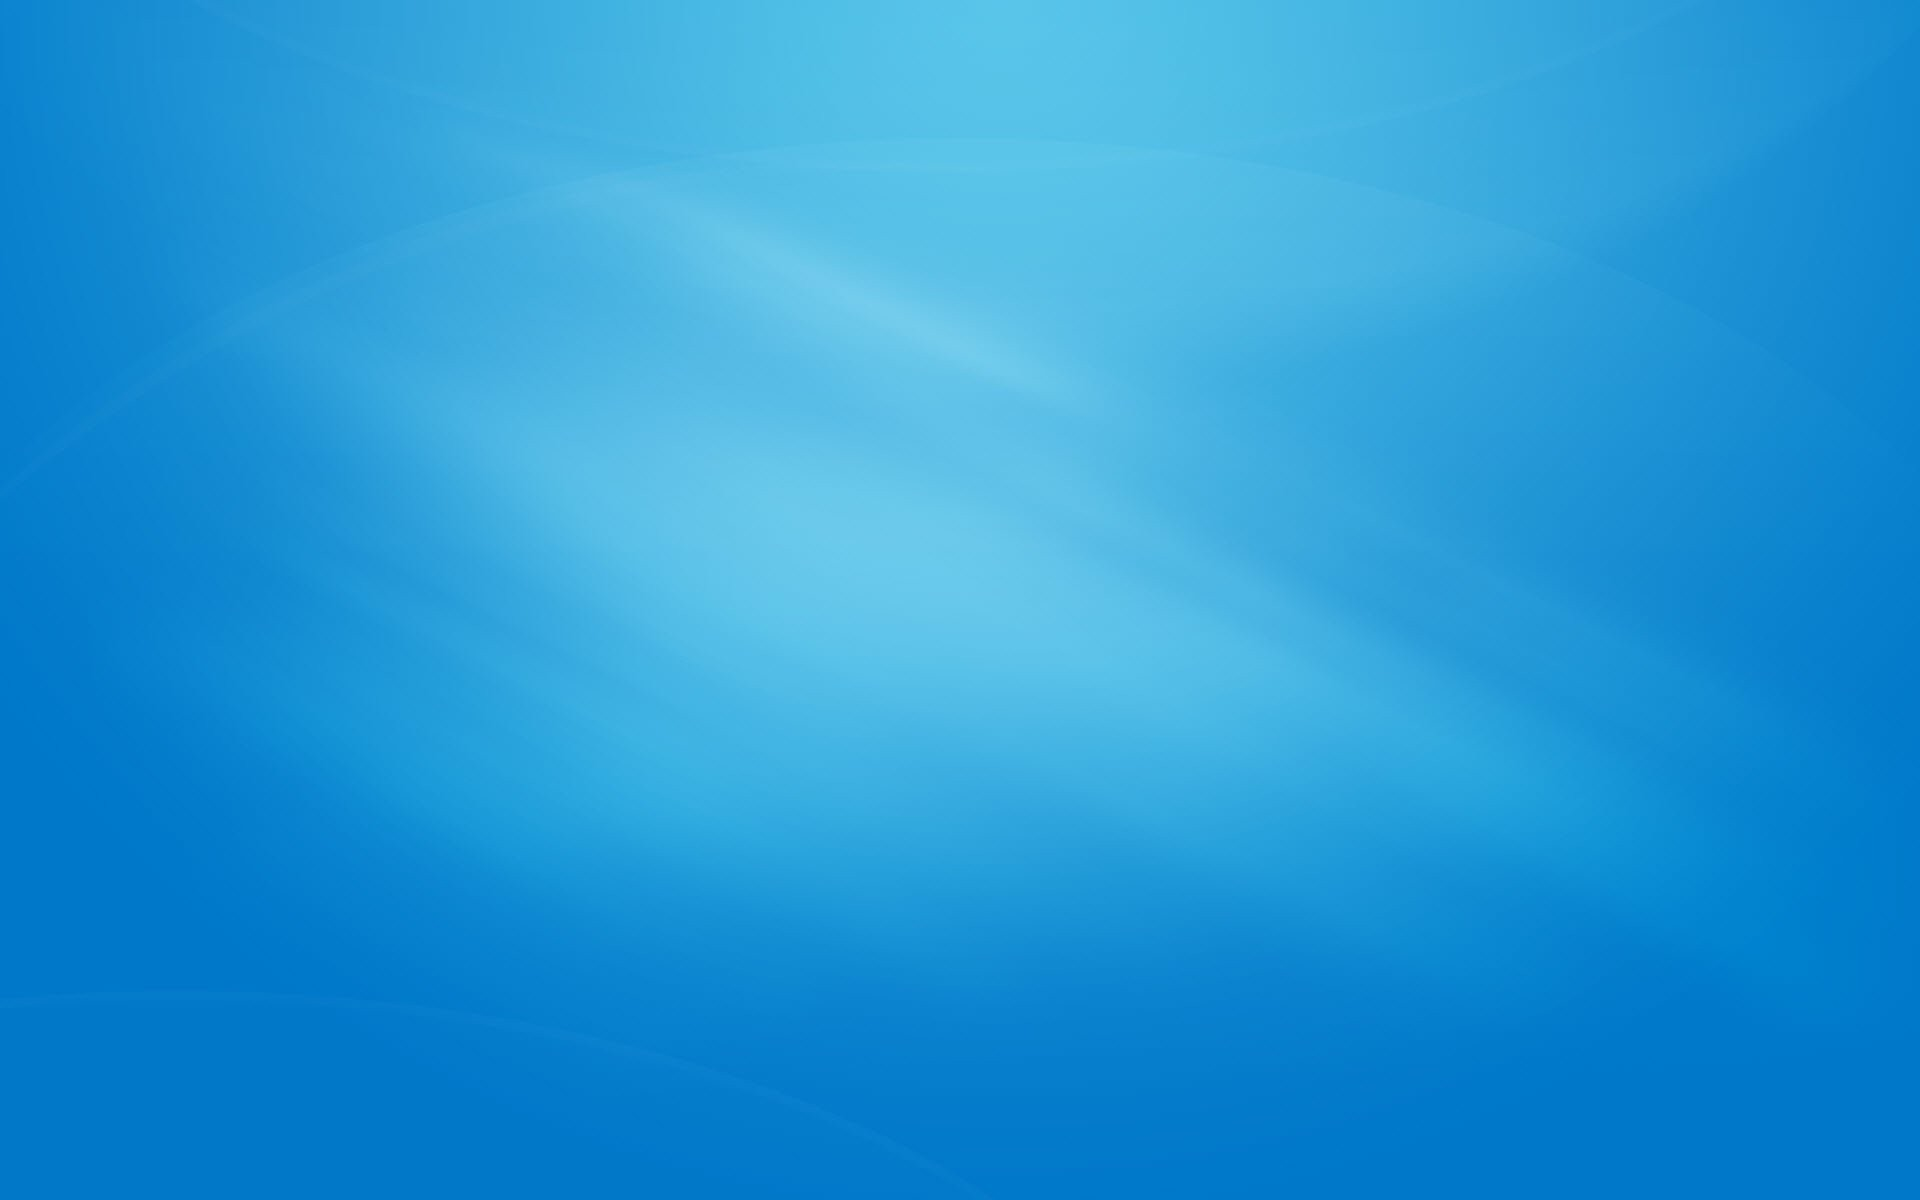 Wallpaper Blue ·① Download Free Cool HD Backgrounds For